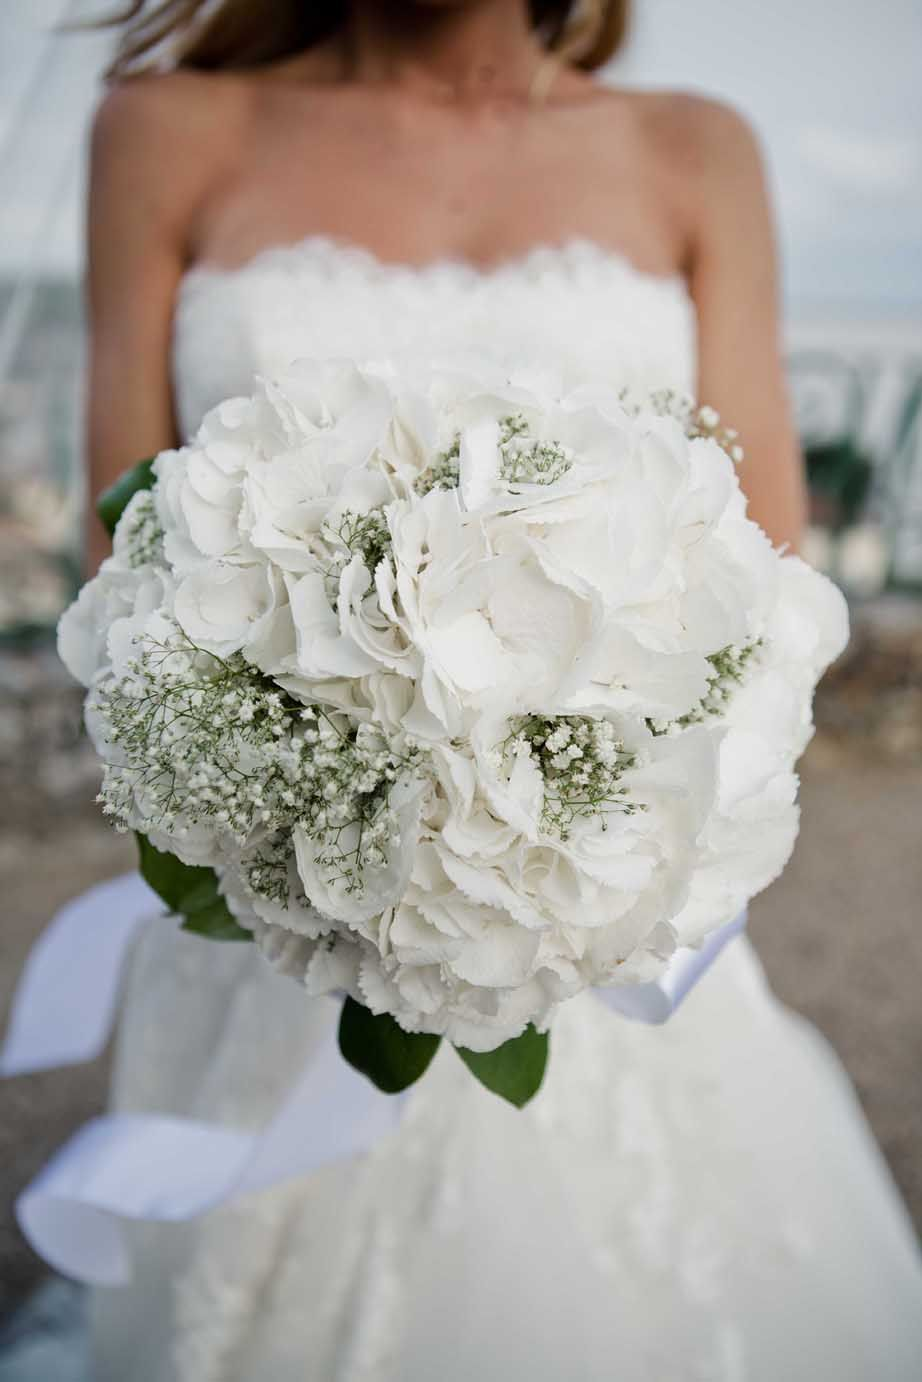 hortensias et gypsophile wedding flowers pinterest mariage chic. Black Bedroom Furniture Sets. Home Design Ideas